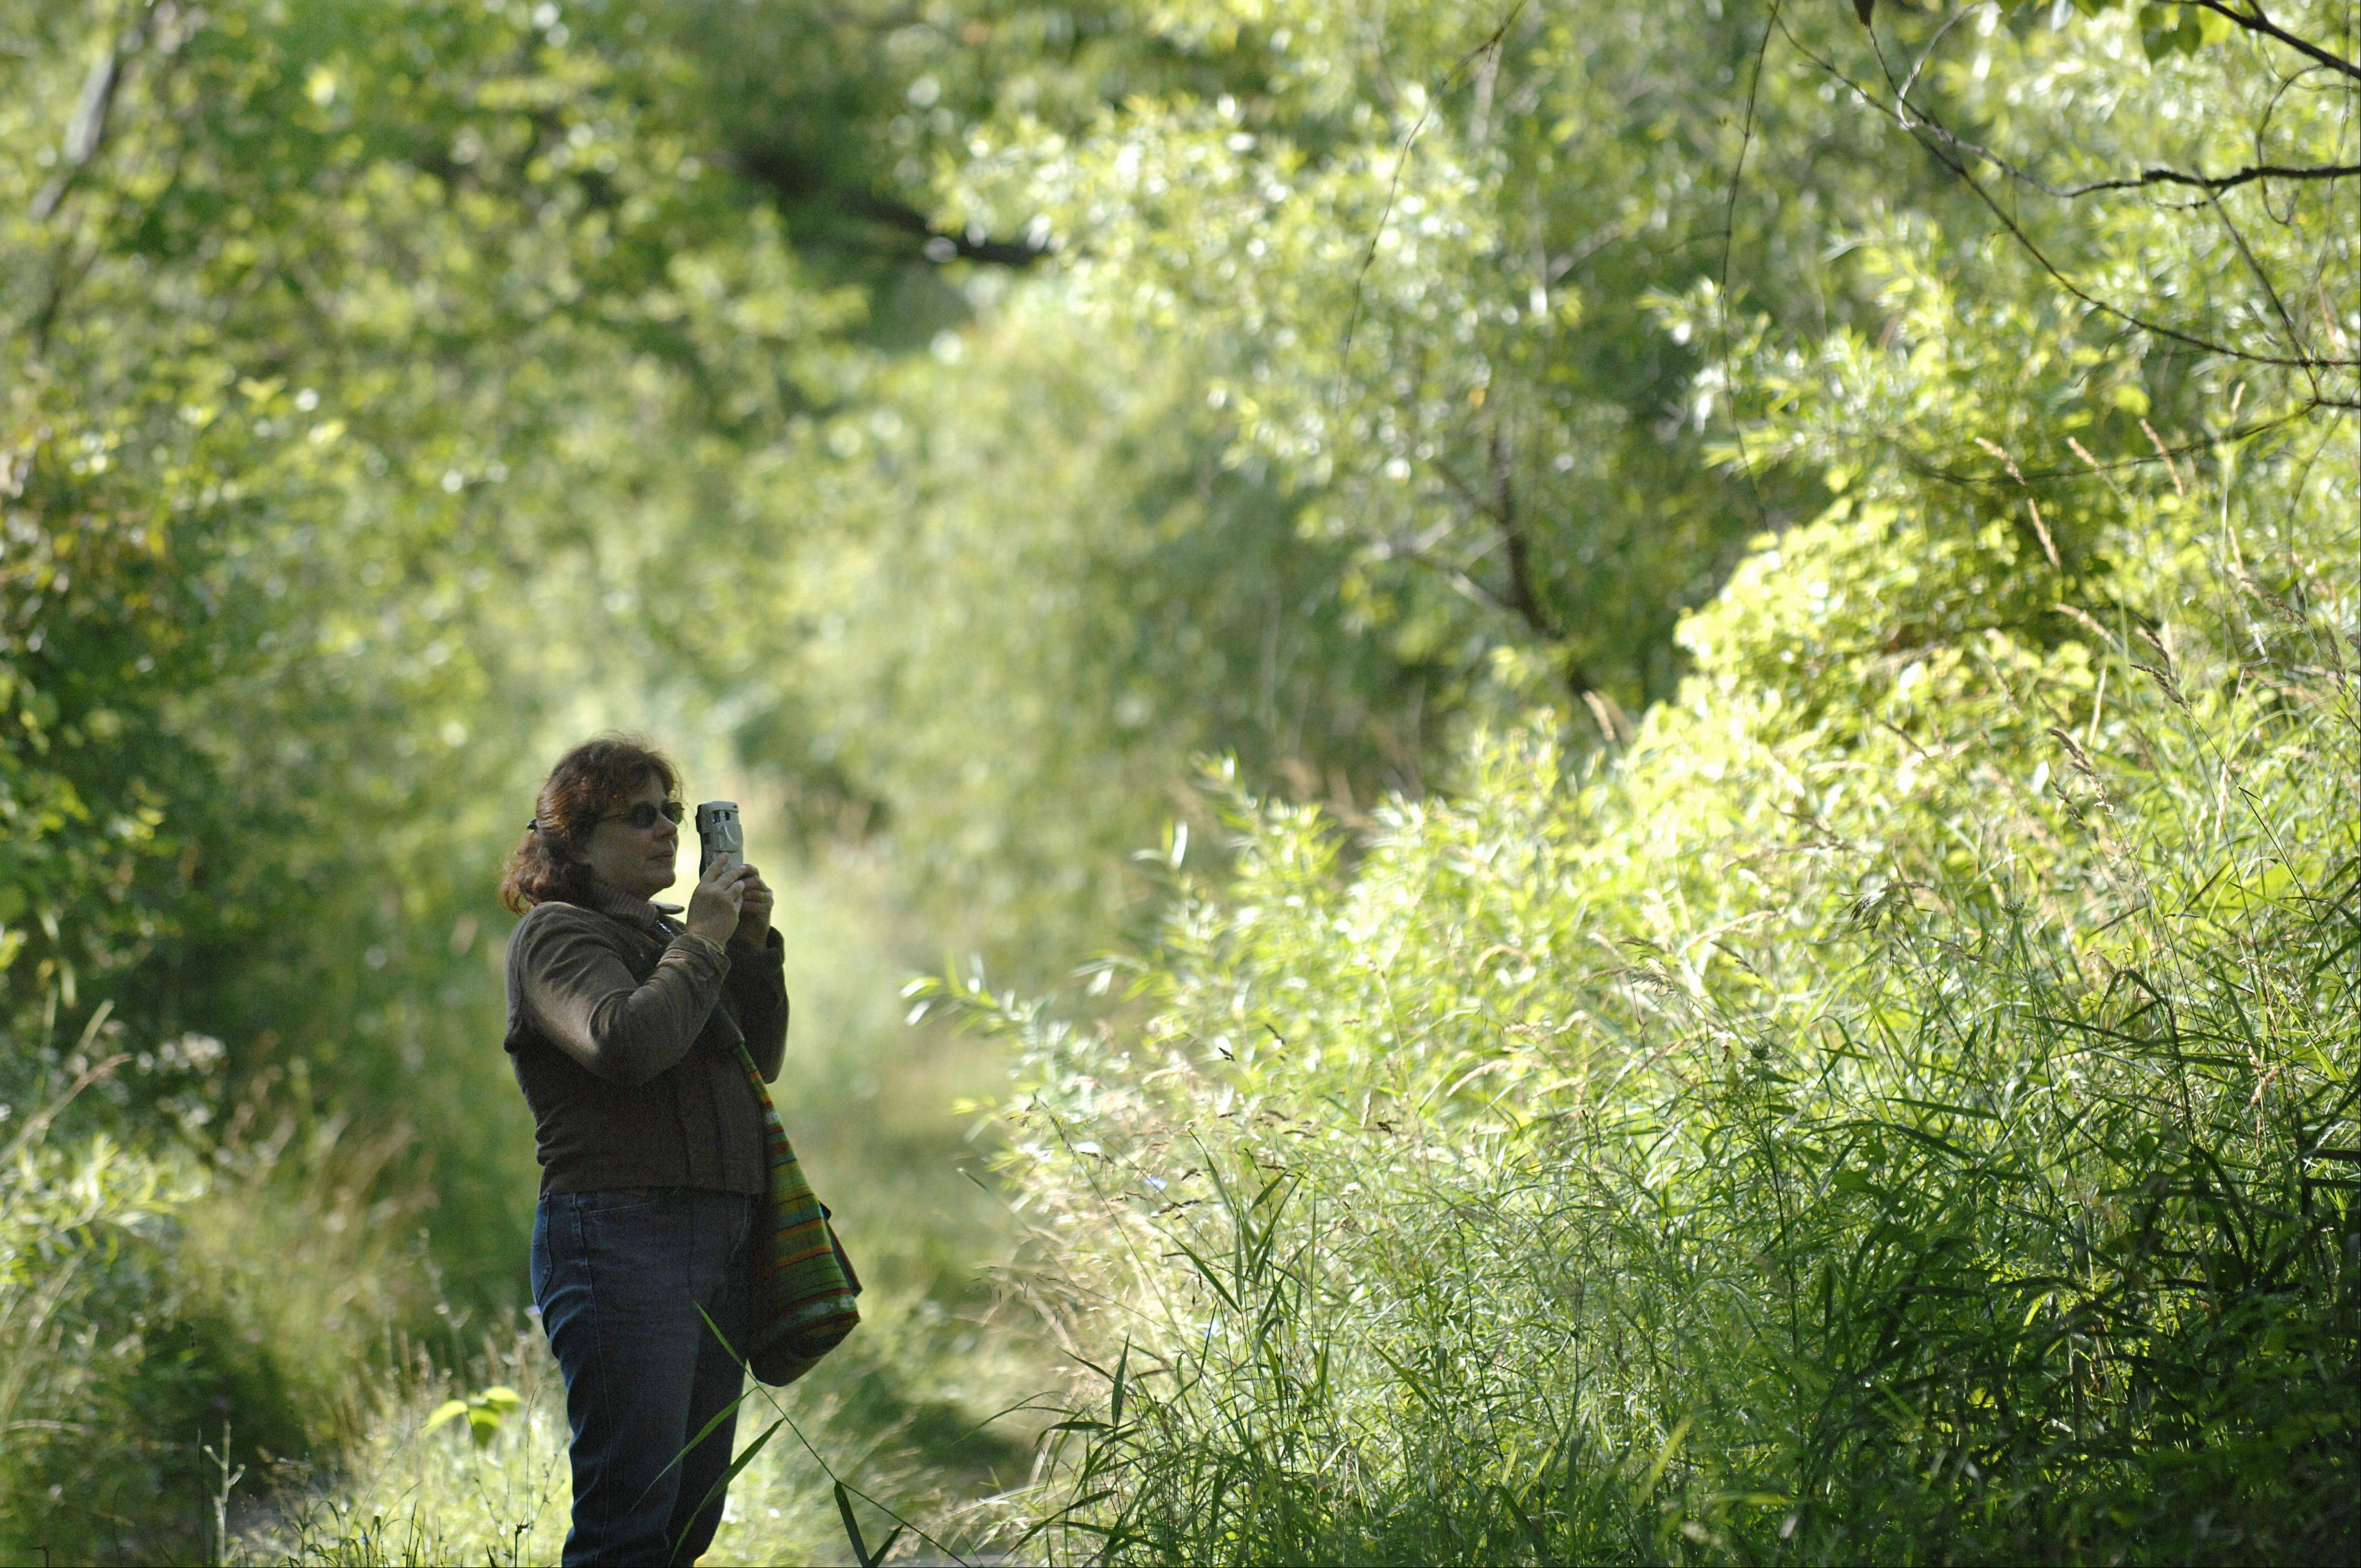 Mary Hogan of Elgin takes photos while on an early morning bird walk with Kane County Audubon Society at Freeman Kame-Meagher Forest Preserve in Gilberts.